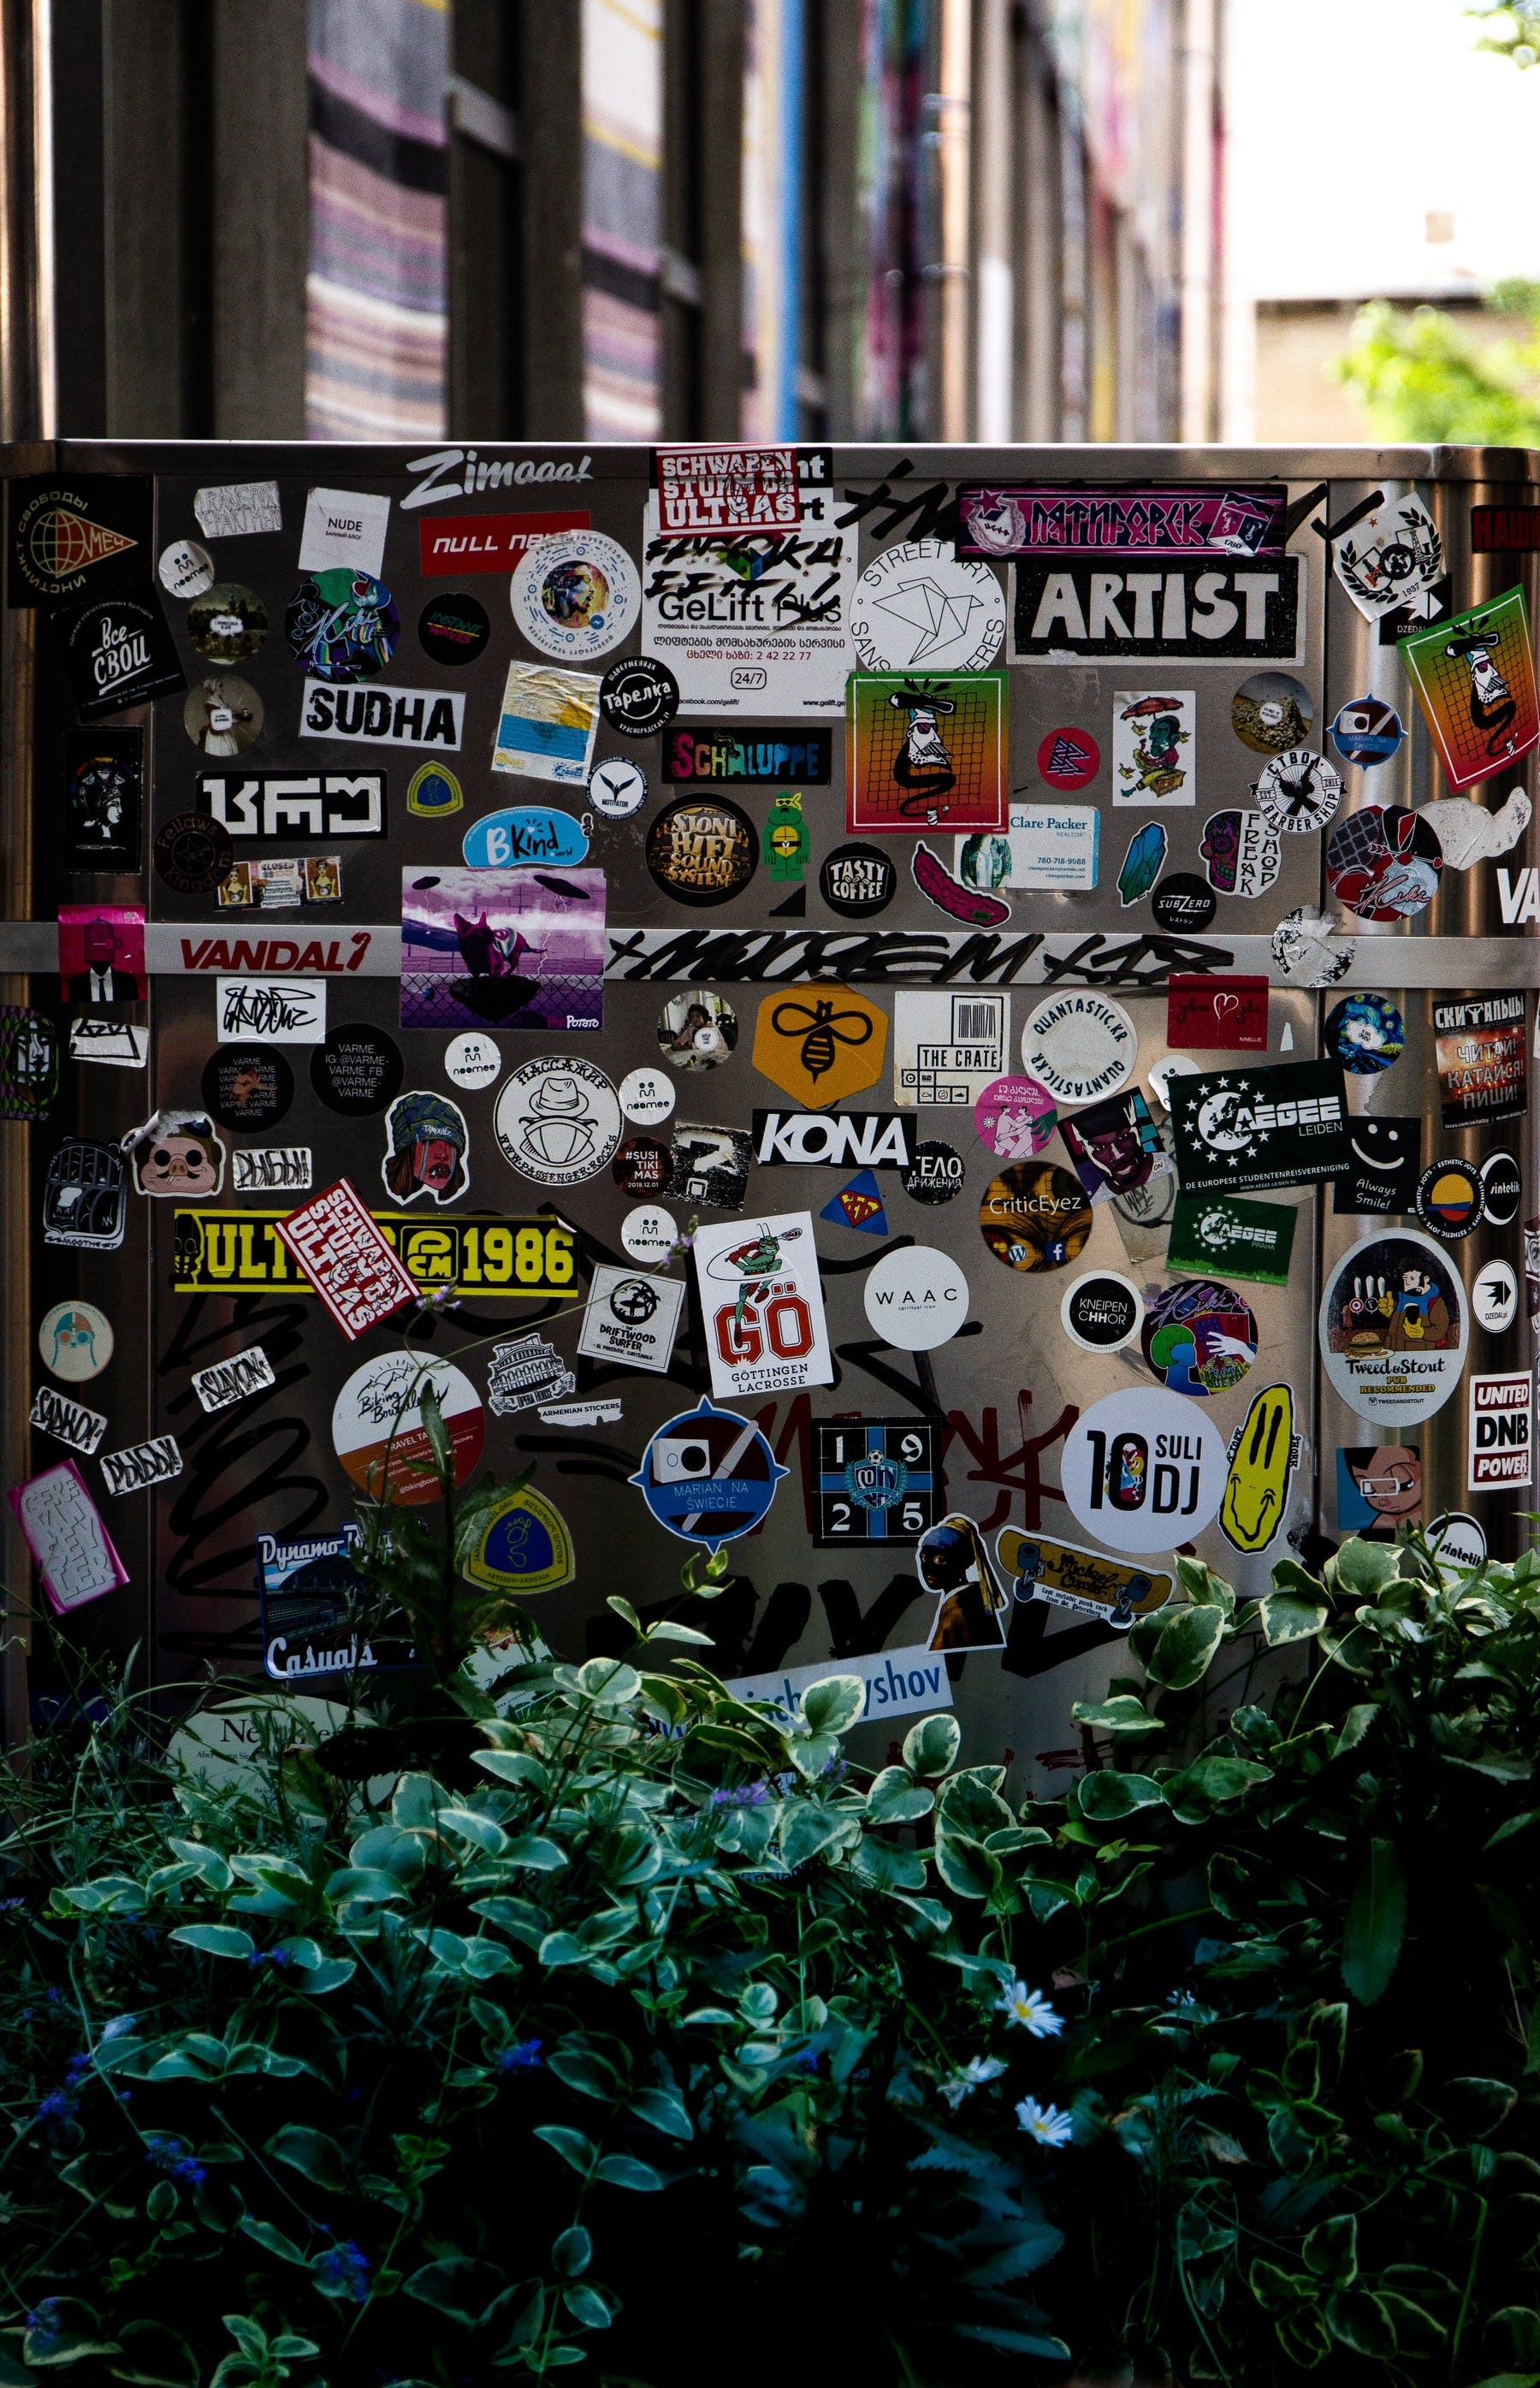 plants with walls covered in stickers